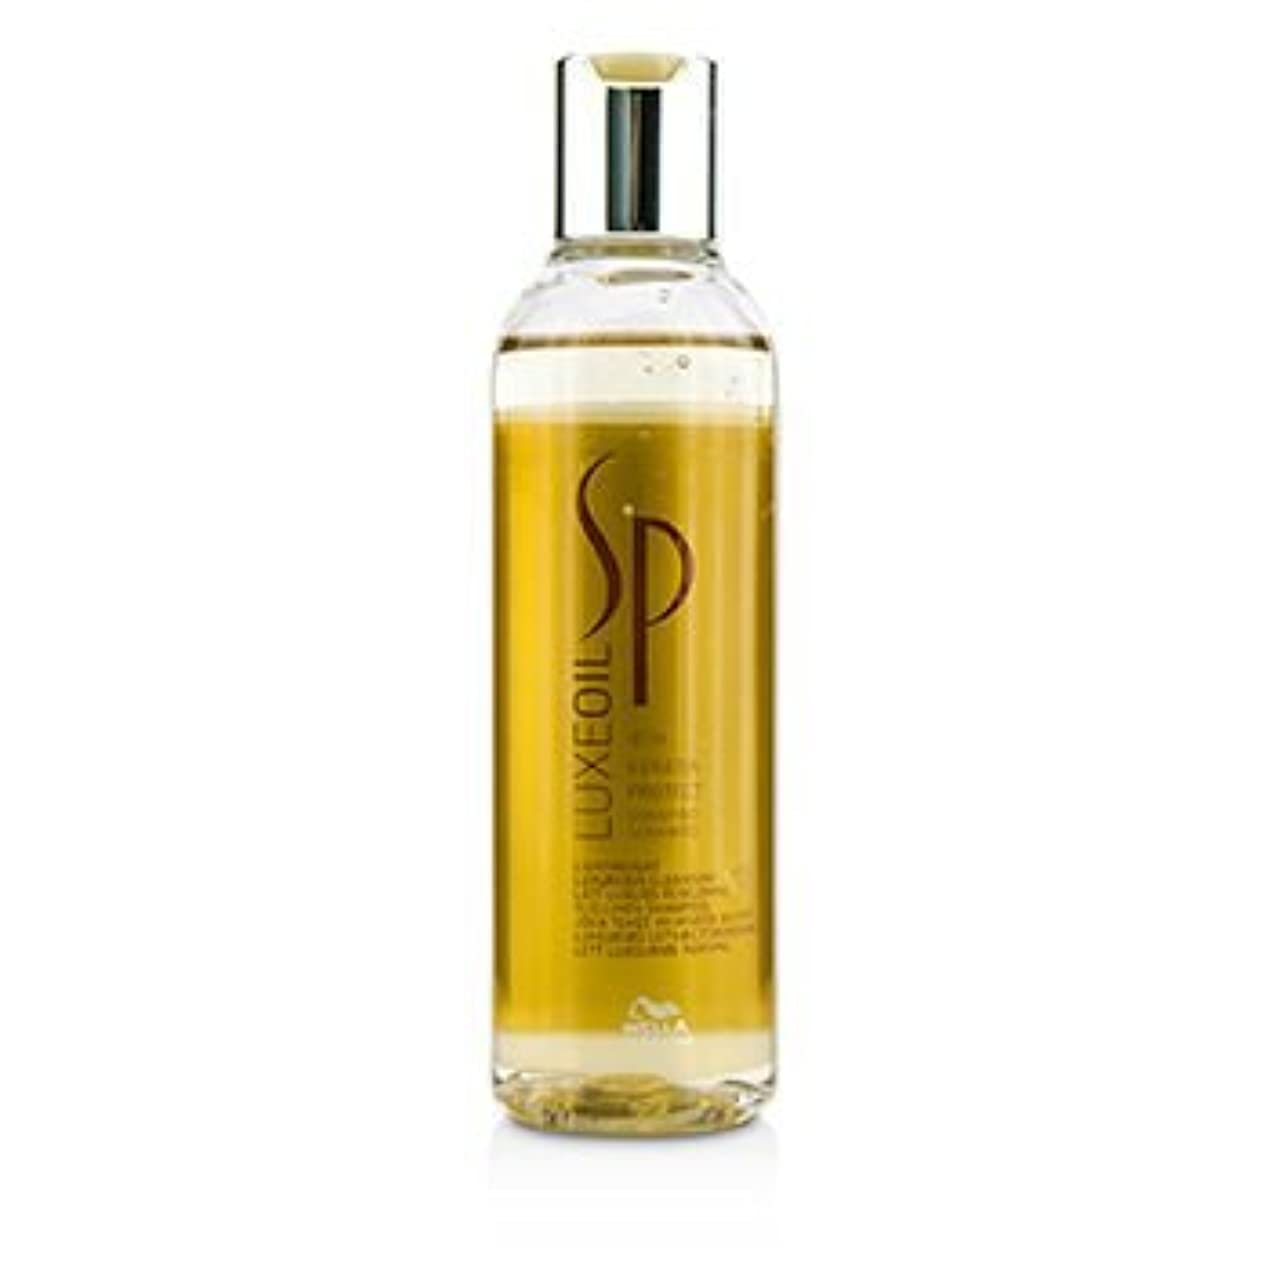 から聞く挨拶する緯度Wella SP Luxe Hair Oil Keratin Protect Shampoo - 200ml by WELLA System Professional [並行輸入品]